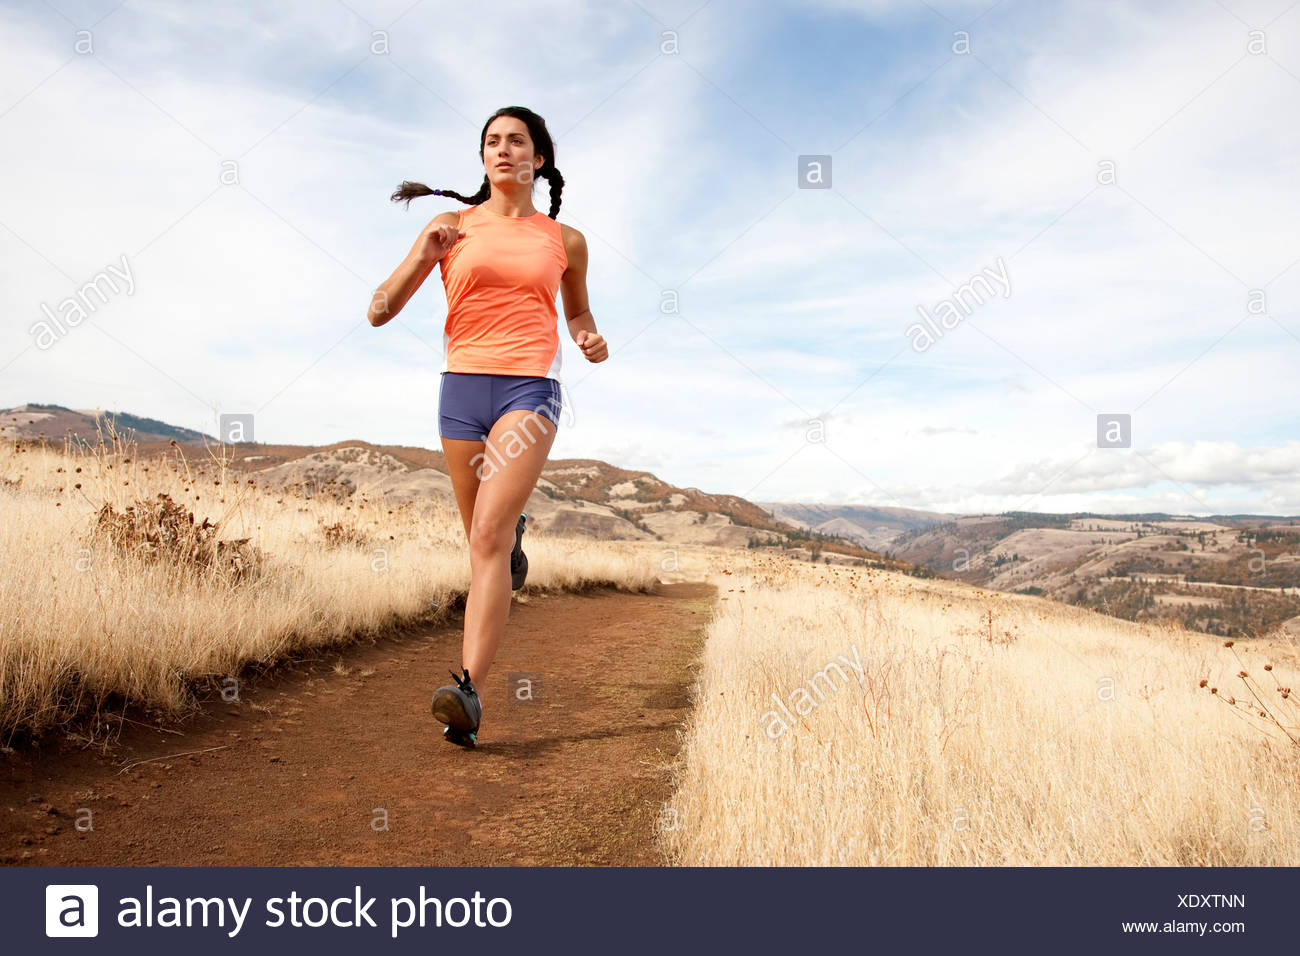 An athletic female jogs on a  dirt trail on an autumn day. - Stock Image